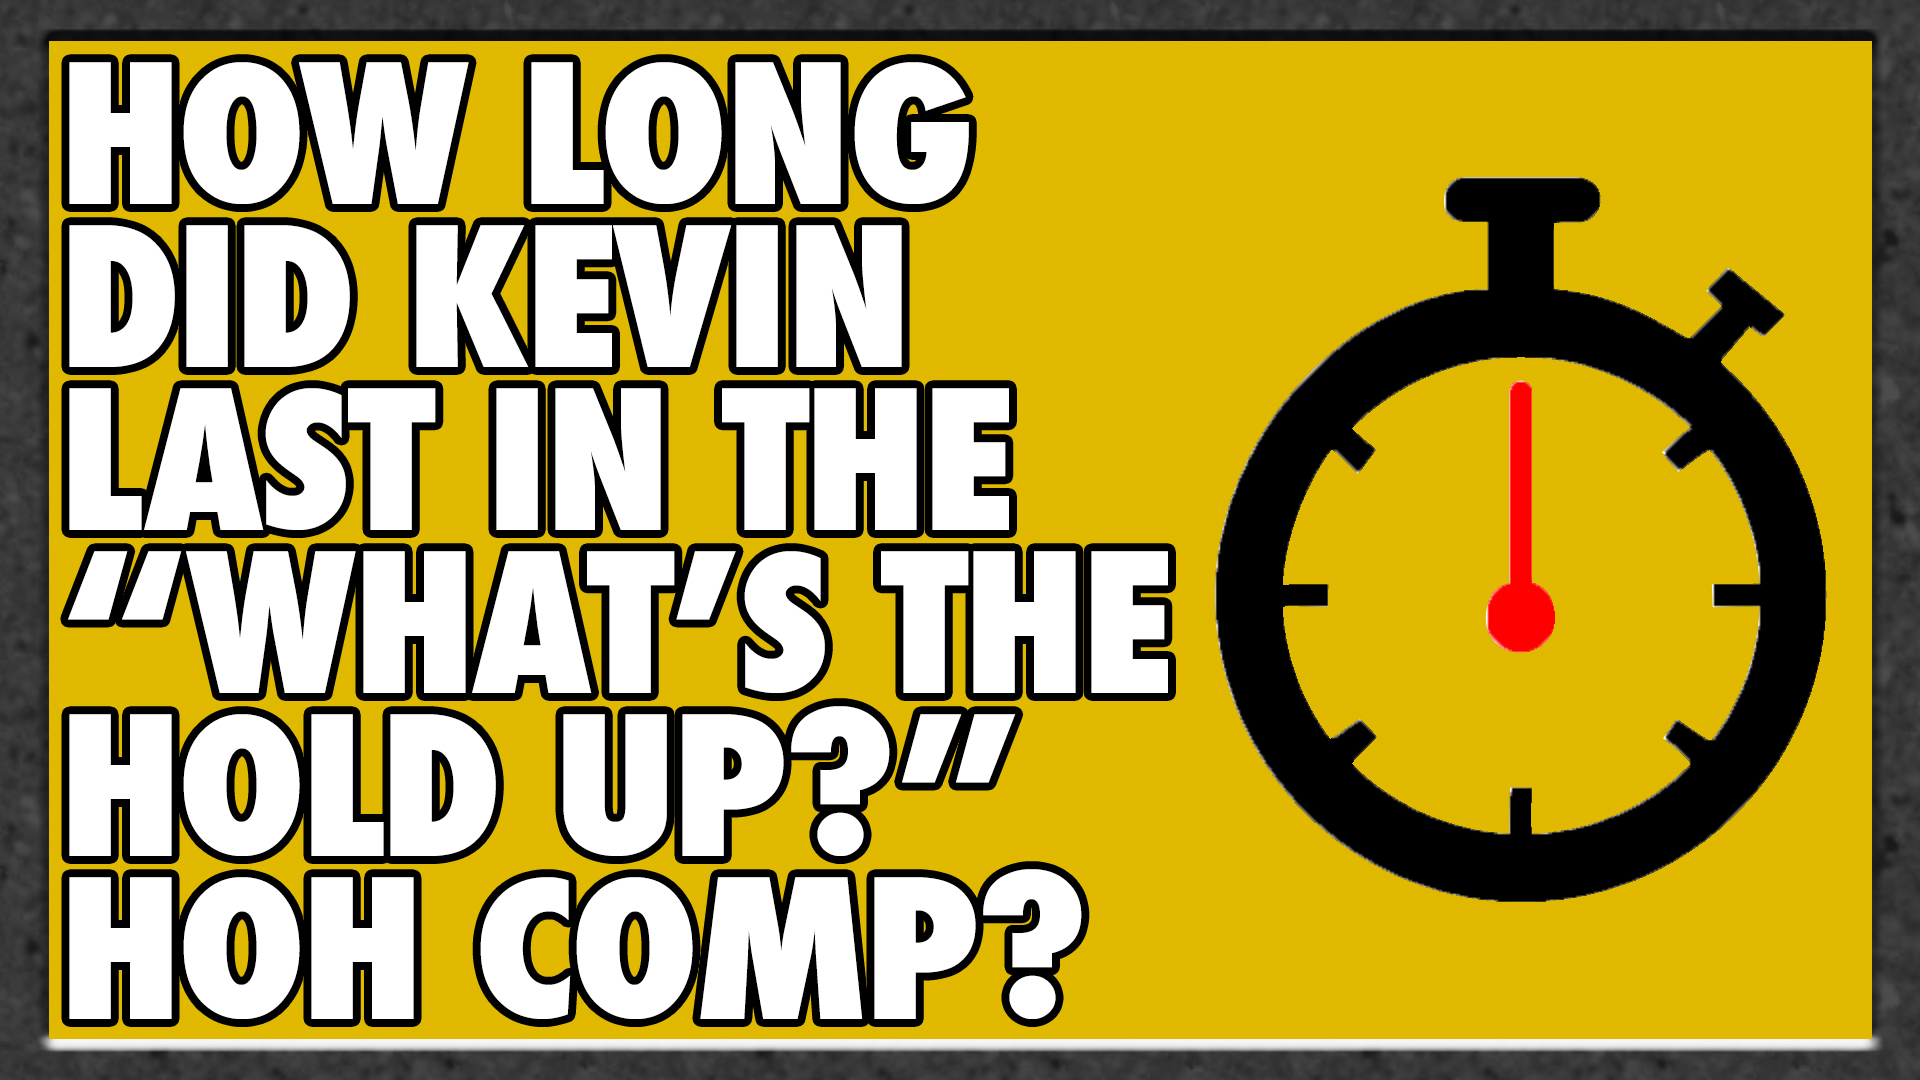 How long did Kevin last in the